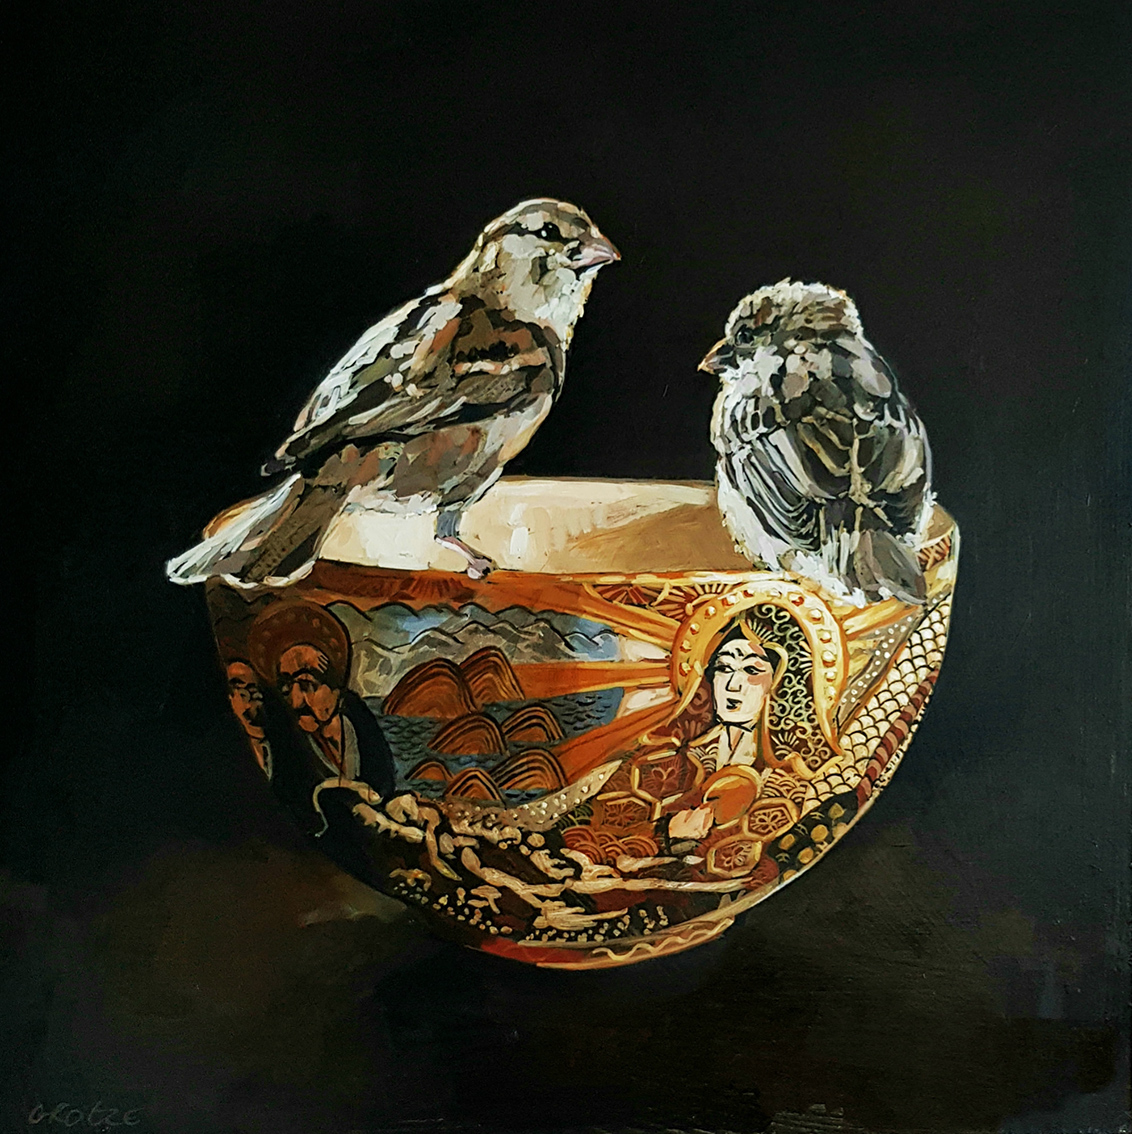 Grace_Kotze_The_two_sparrows_and_the_antique_Chinese_bowl_40_x_40_x_4cm_Acrylic_on_Board_net